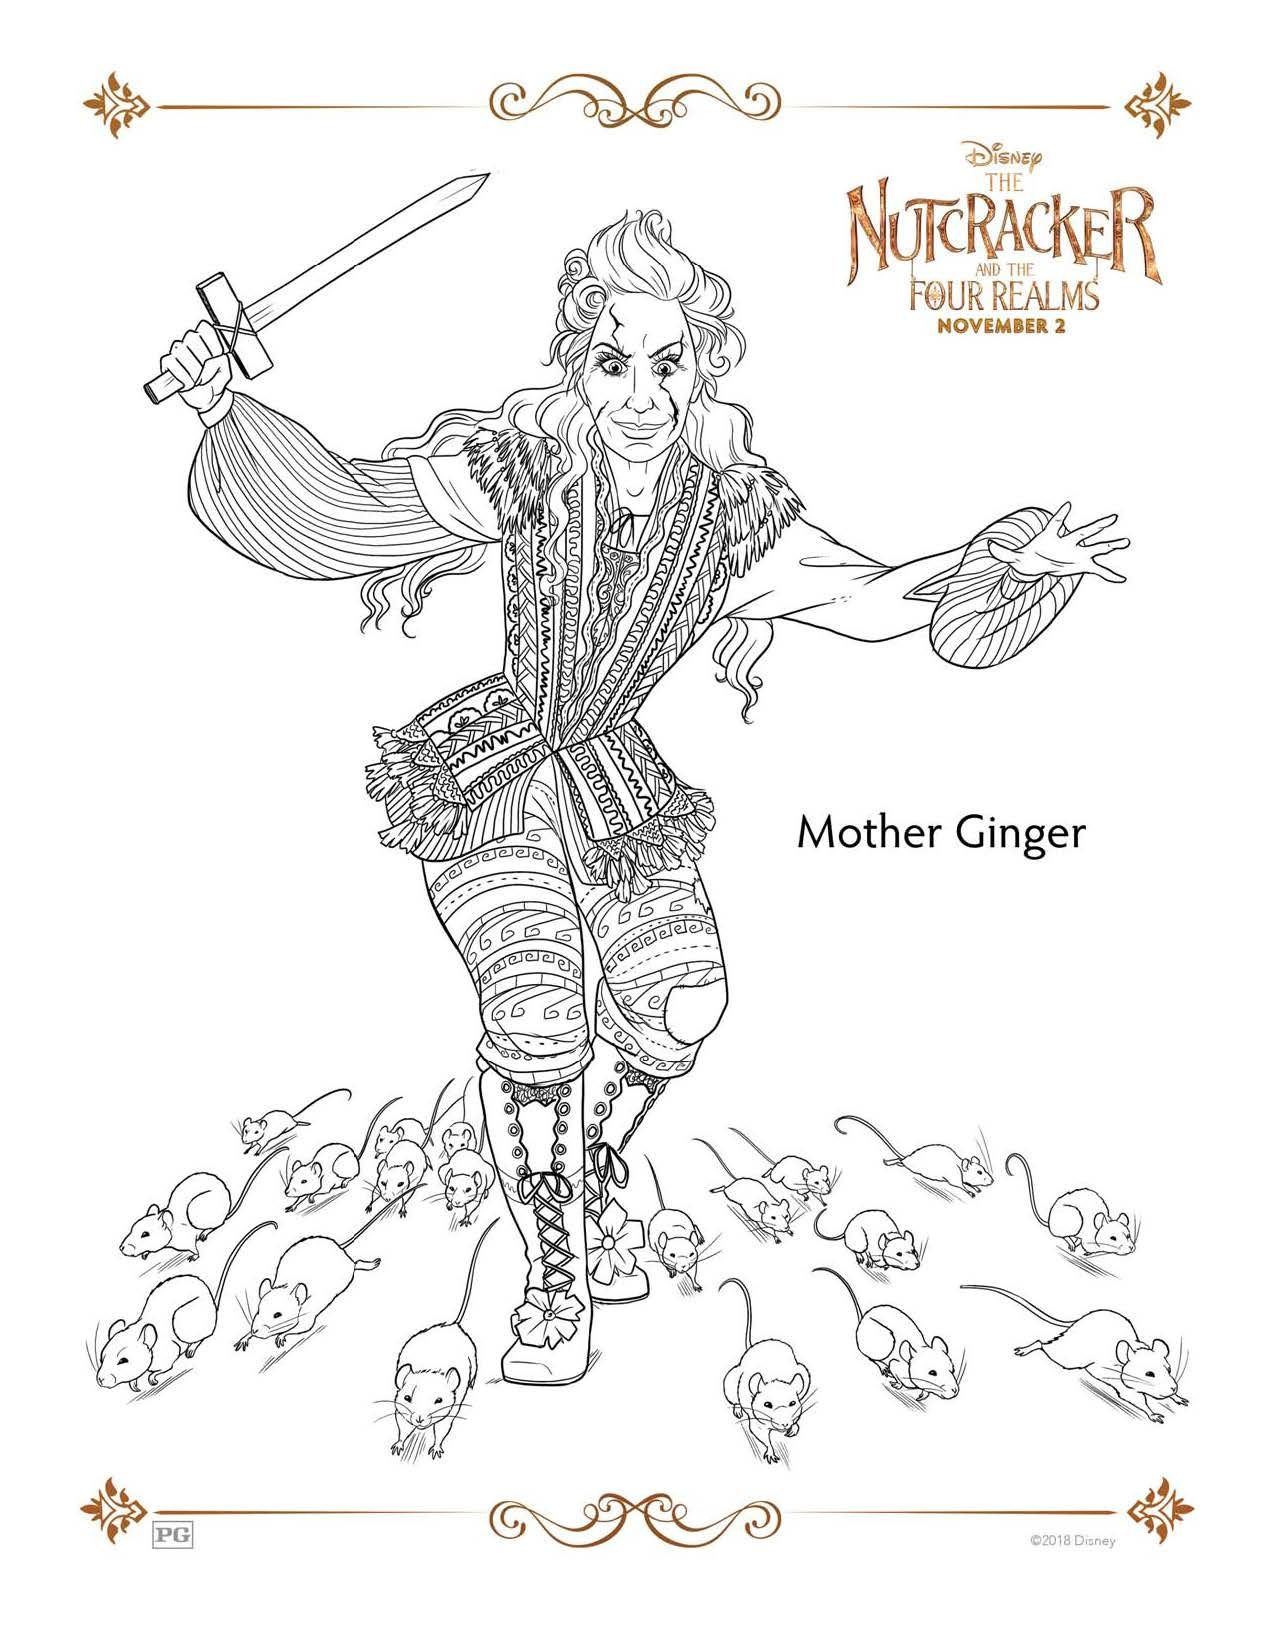 Printable Coloring Activity Sheets For Disney S The Nutcracker